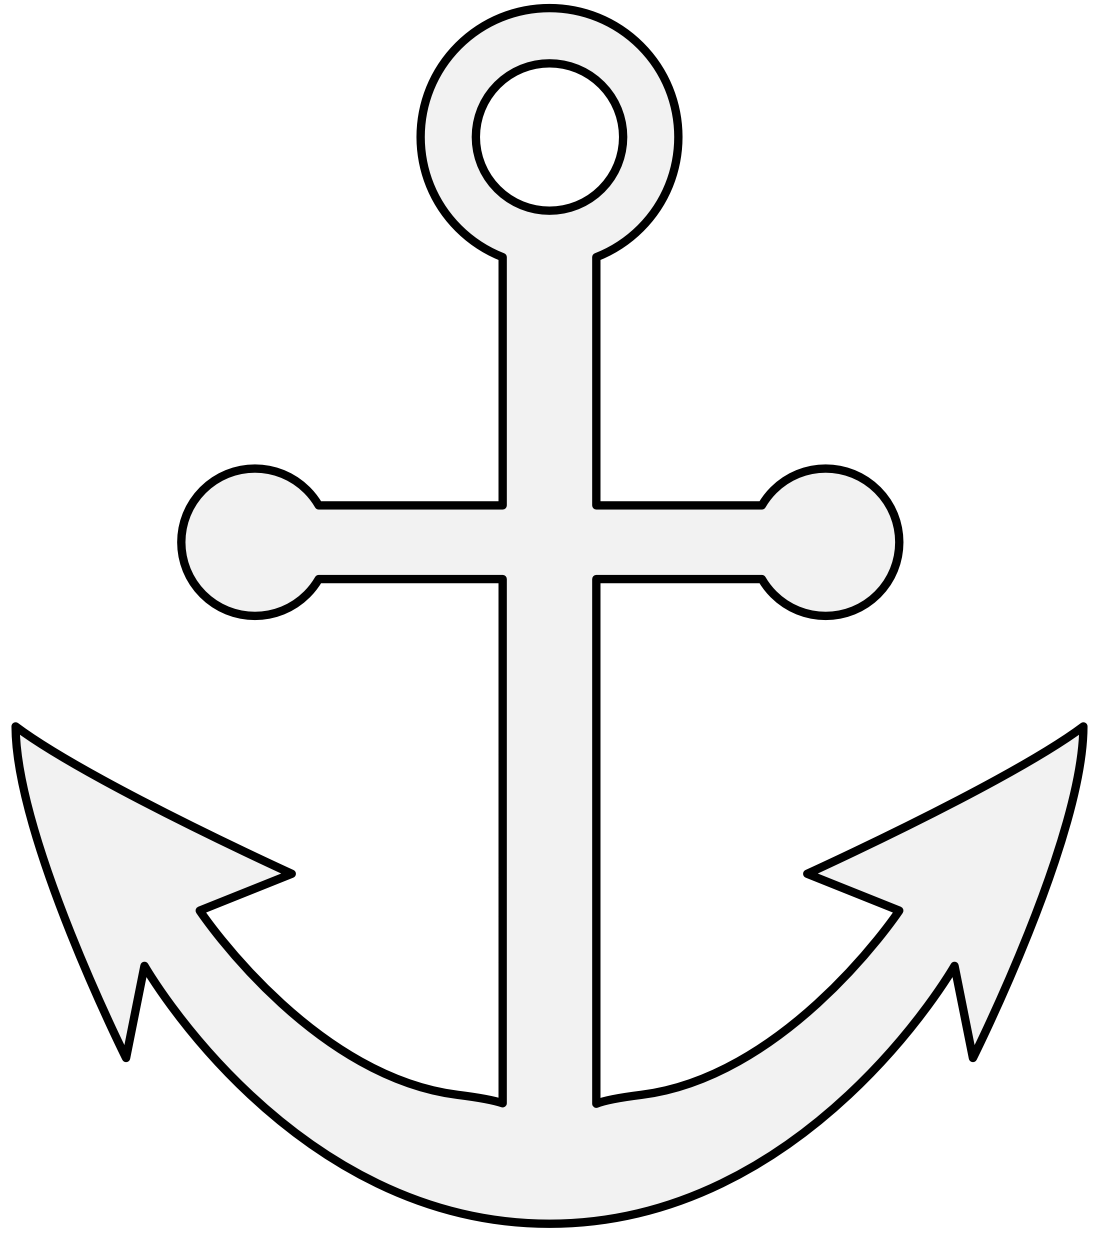 Clipart anchor traceable. Heraldic art